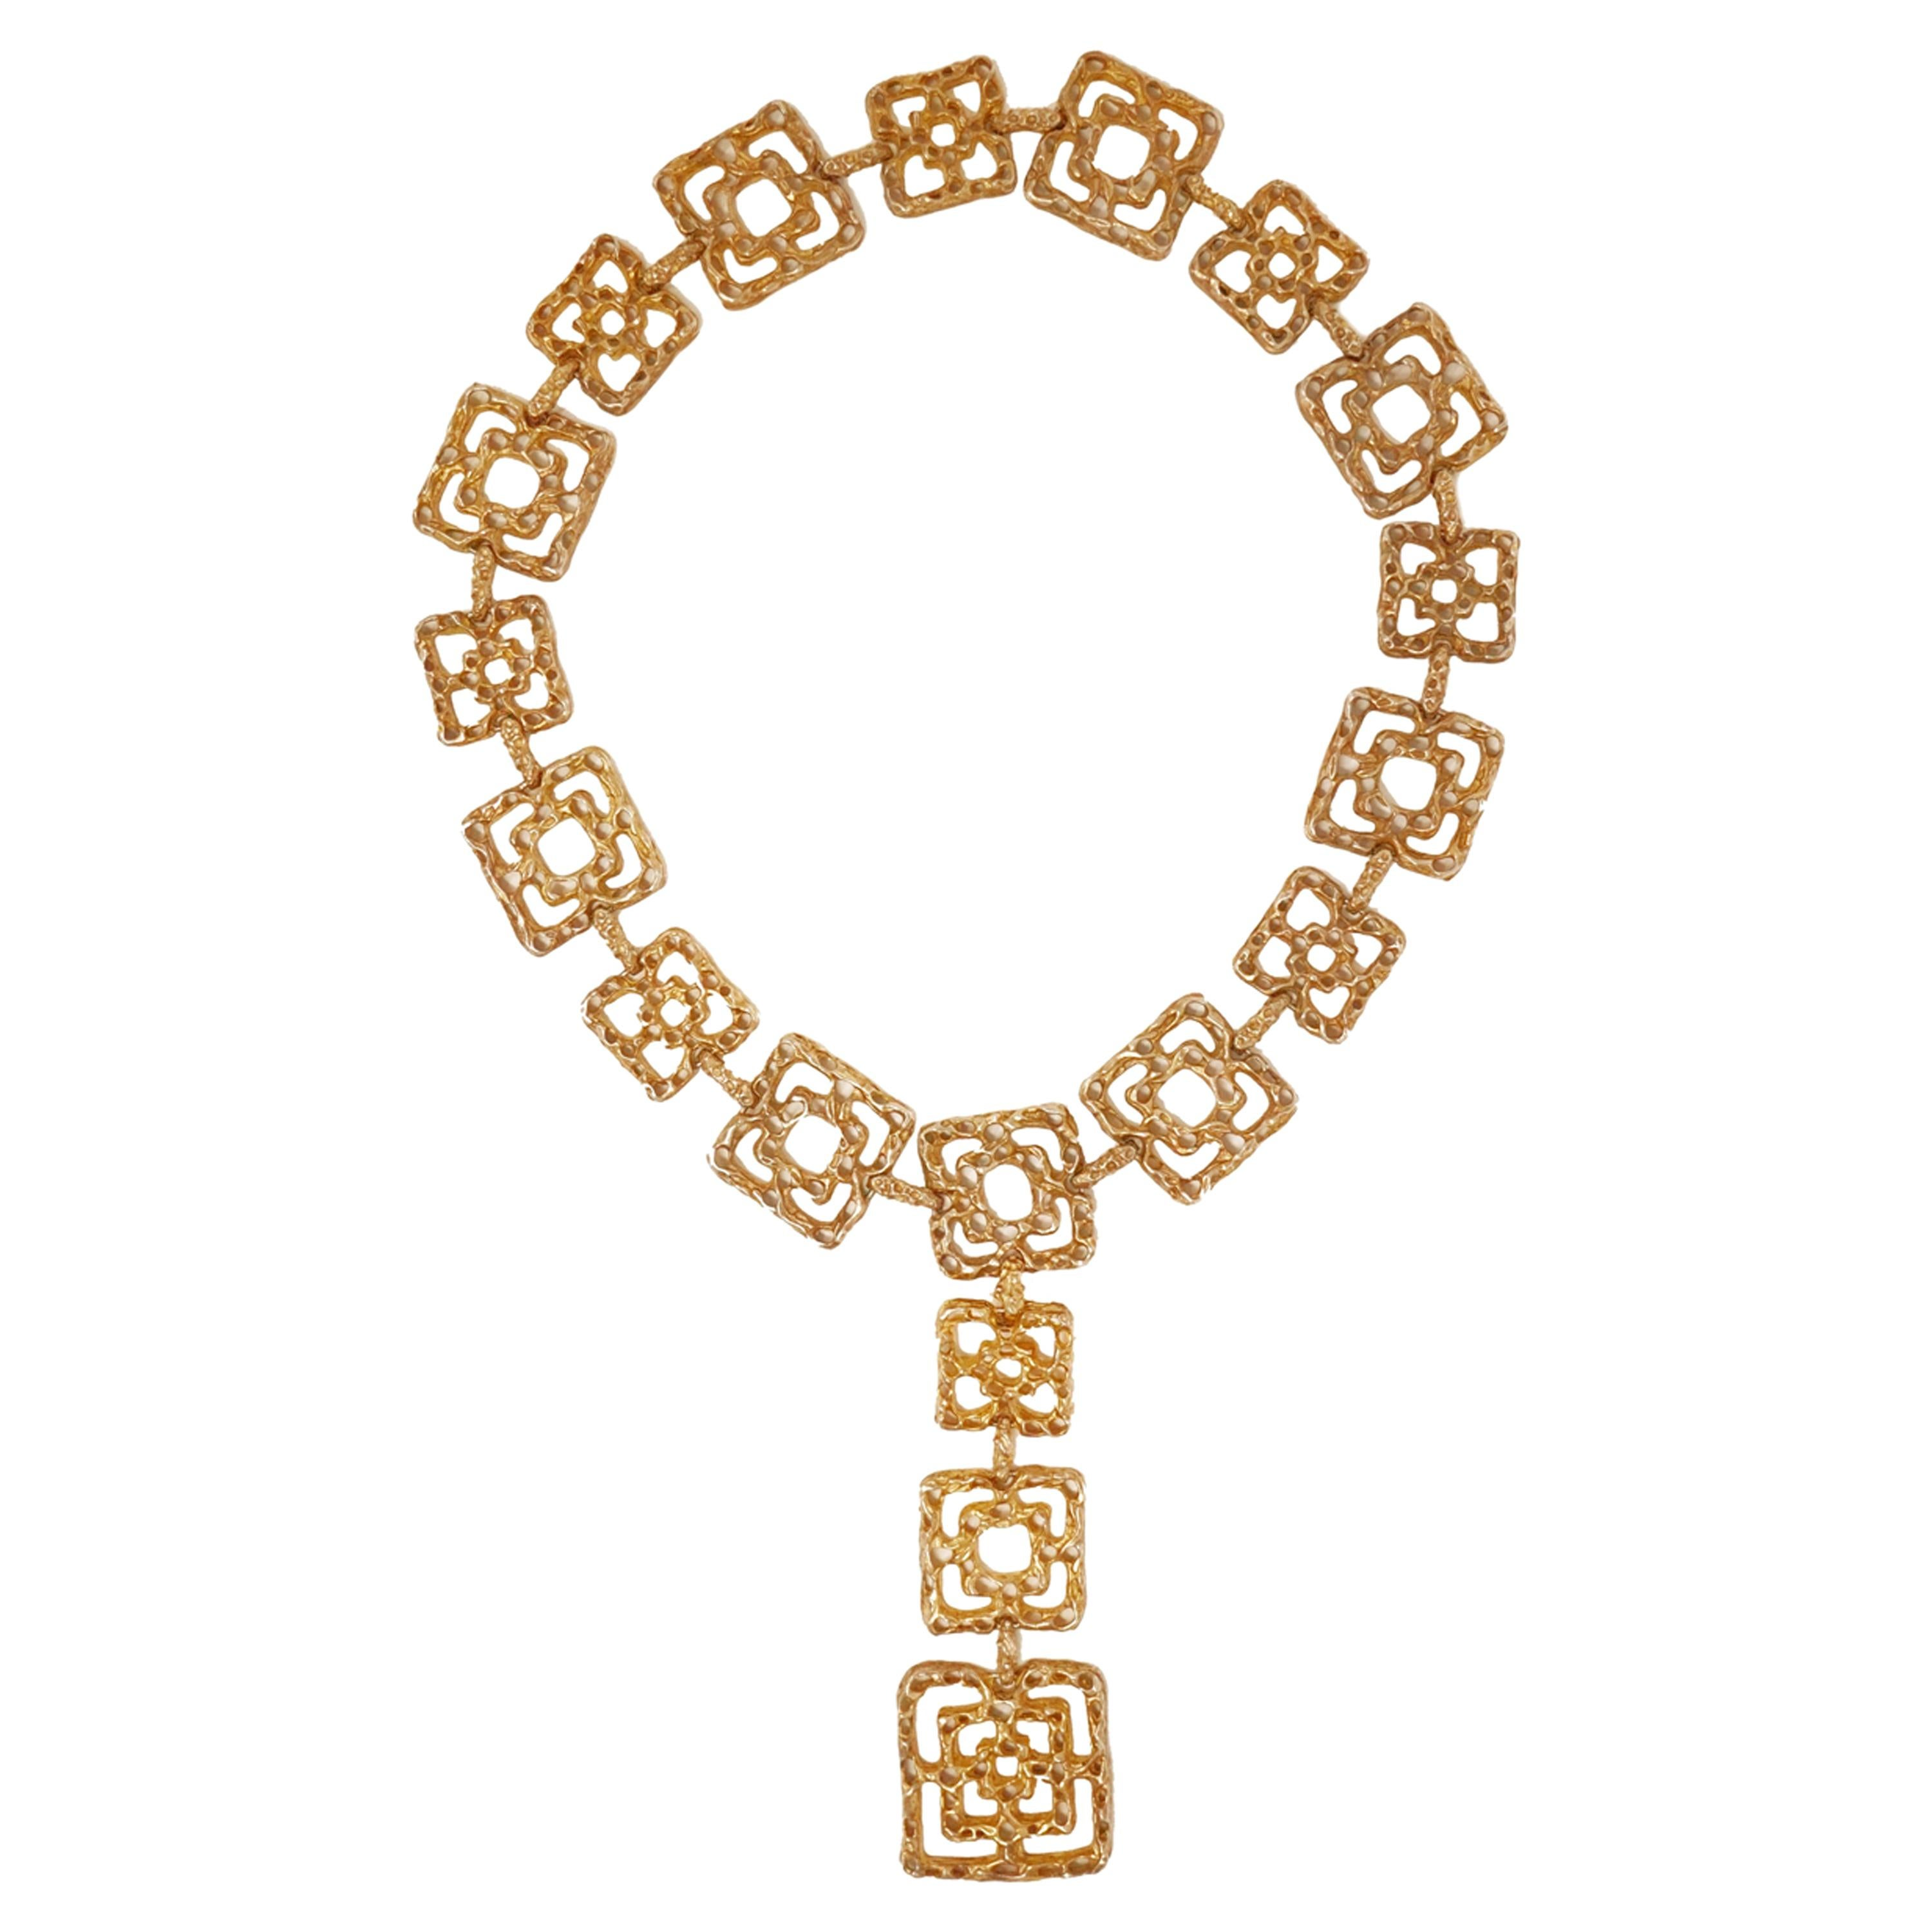 """Cartier """"Byzantine"""" Belt or Necklace in Gold Vermeil, Signed, circa 1970"""